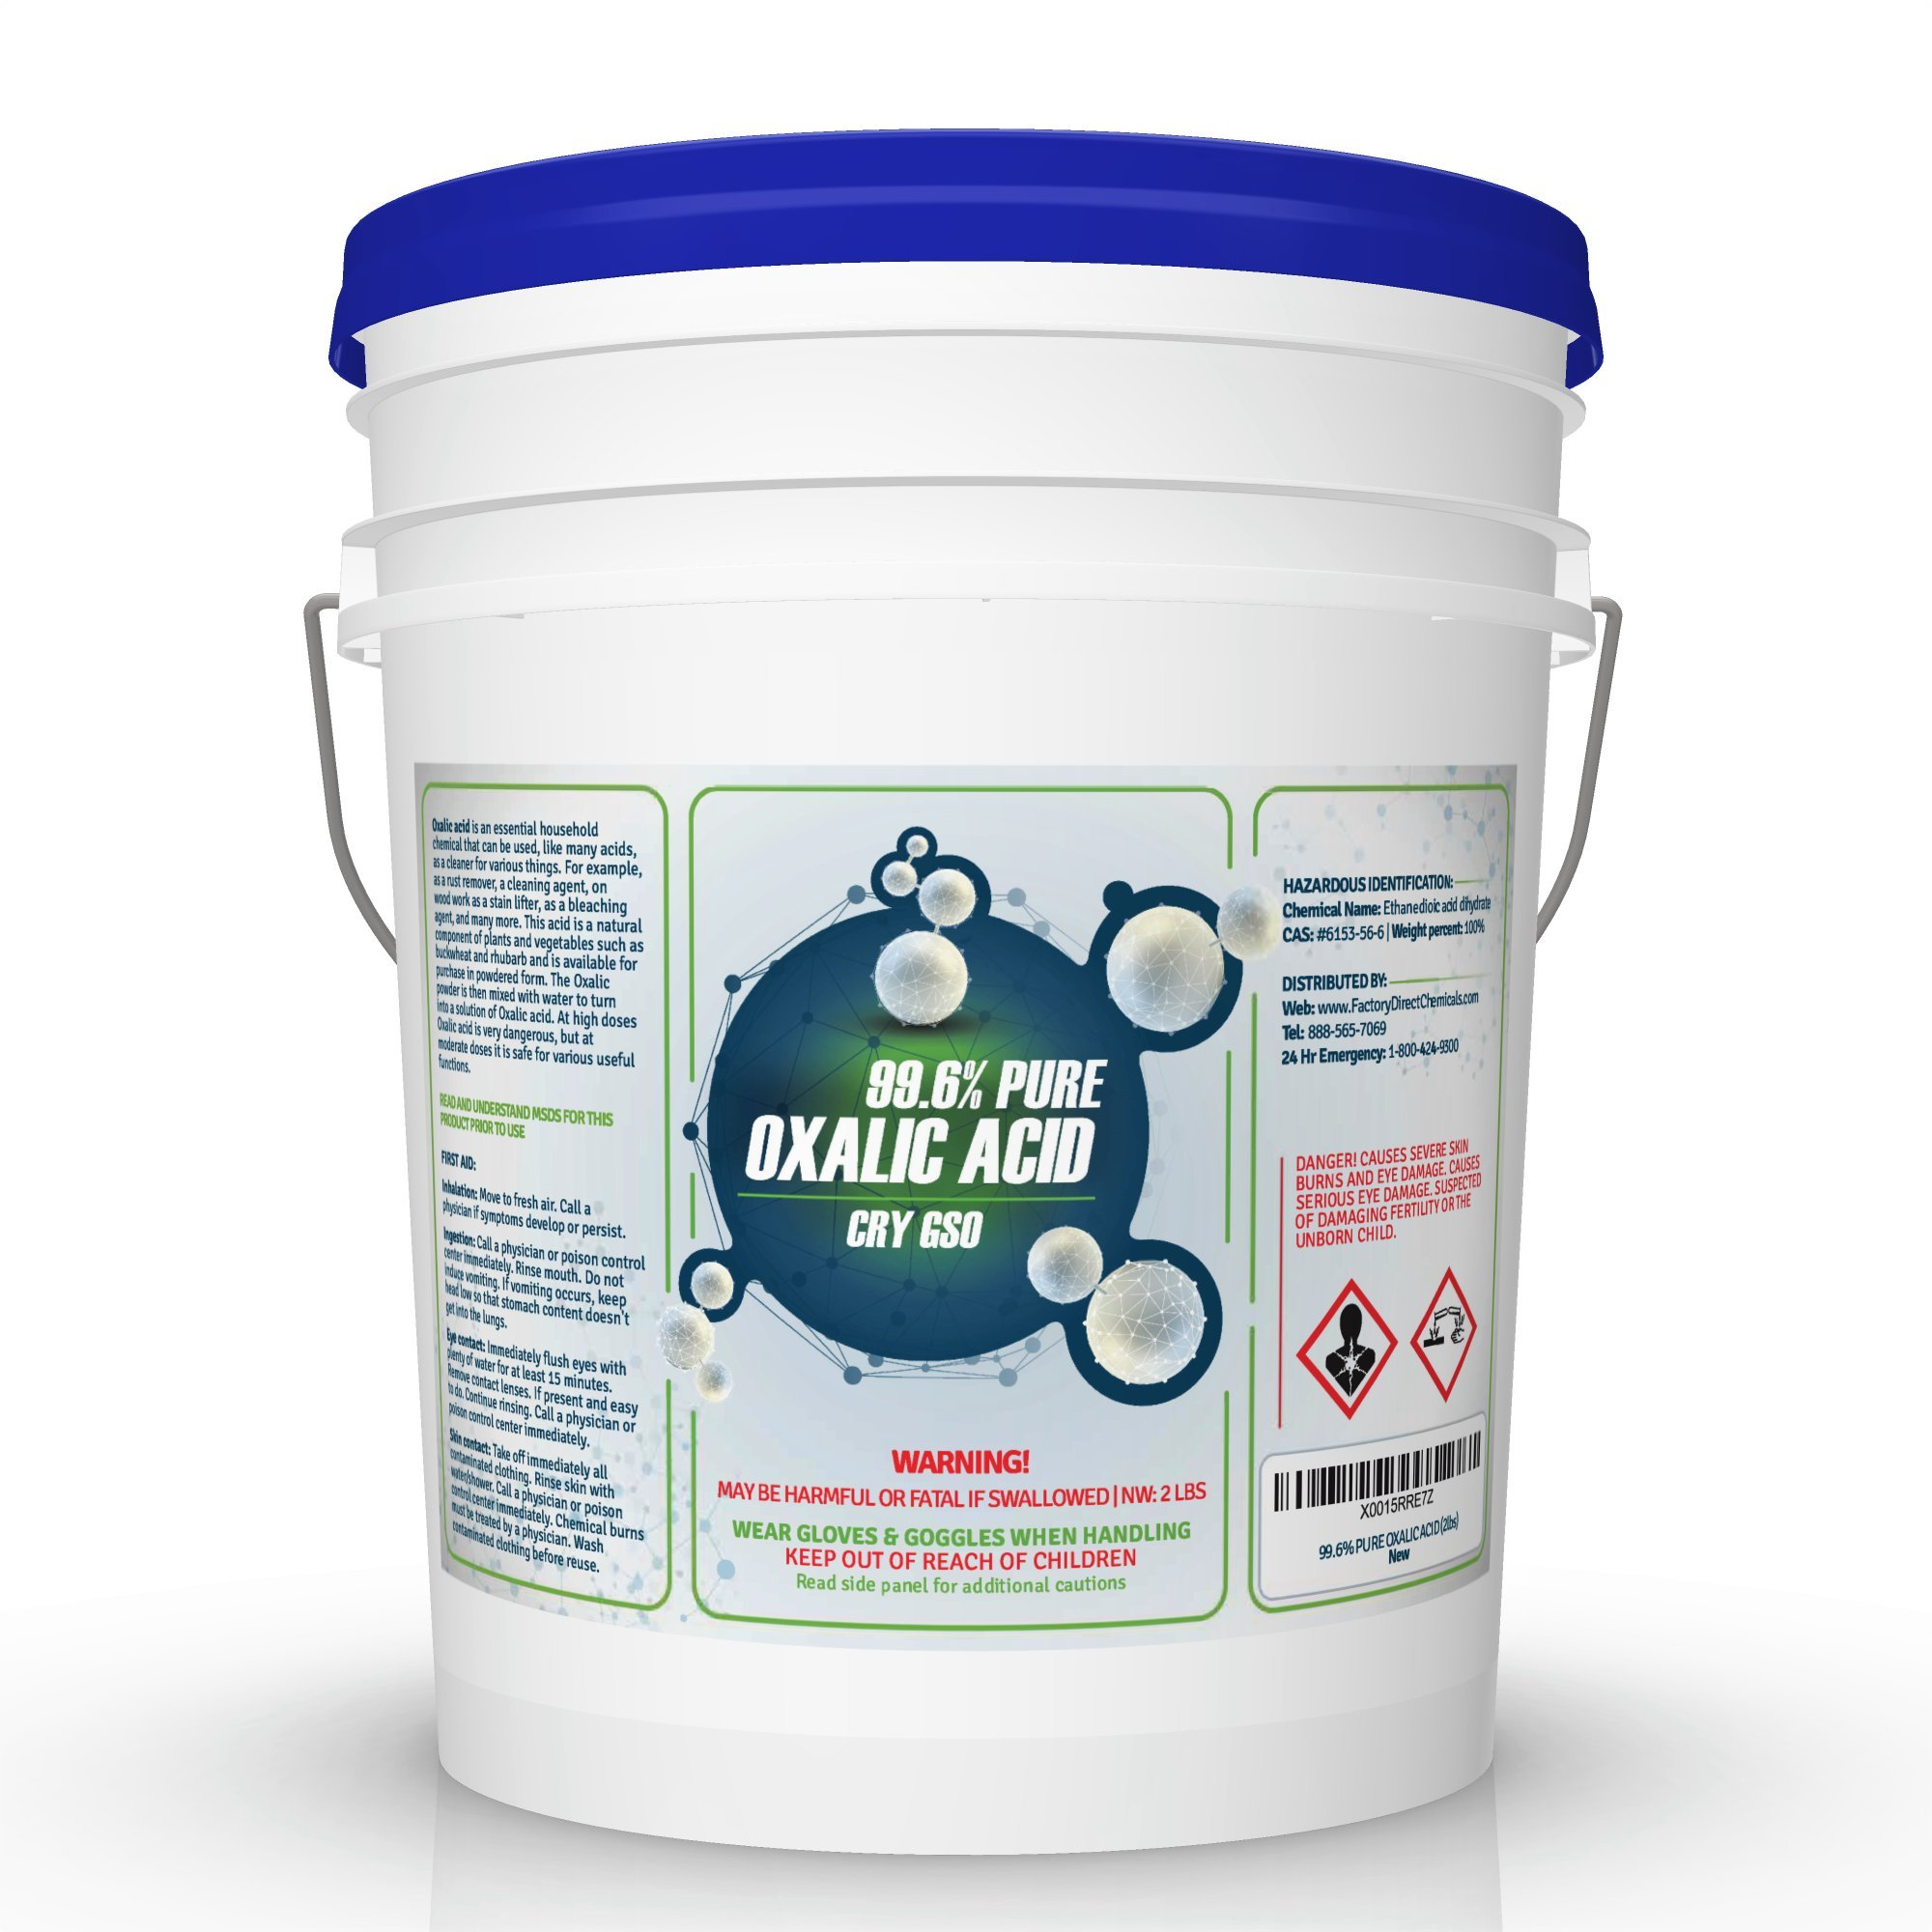 99.6% PURE OXALIC ACID Powder C2H2O4 (Ethanedioic Acid Dihydrate) Rust Remover, Bleaching Agent, Wood Stain Remover & More! (40 Pound Pail)